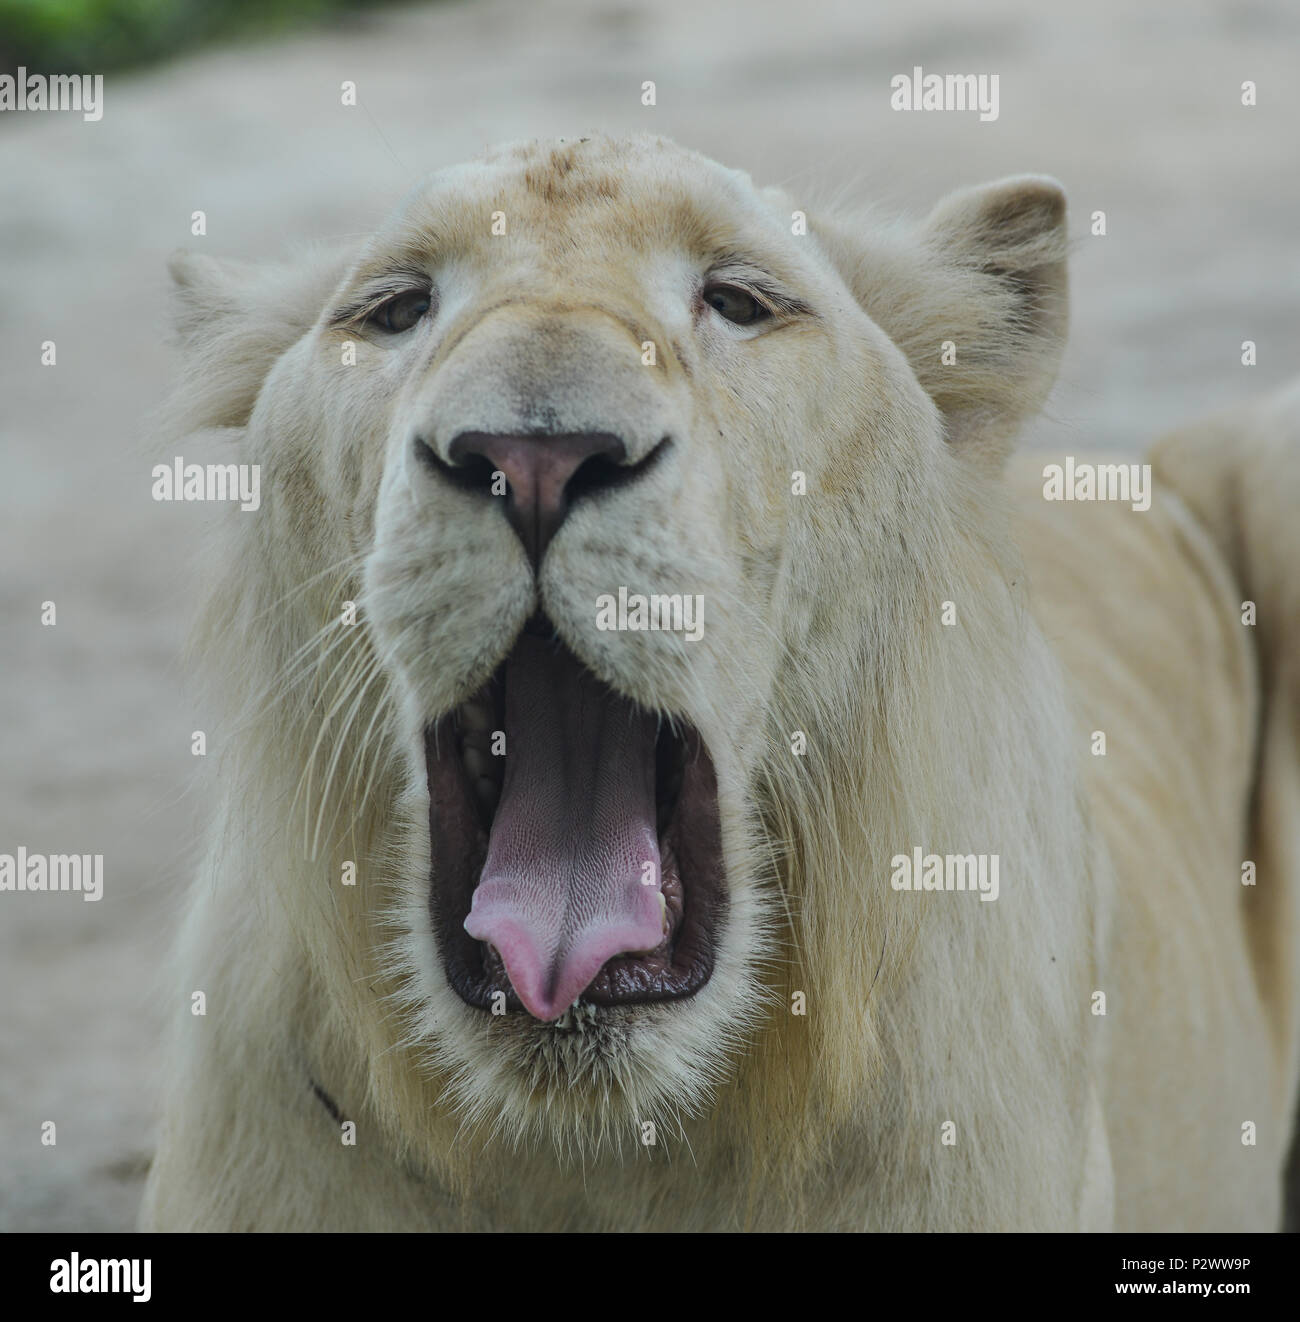 A white lion - Transvaal lion (Panthera leo krugeri) in the zoo. - Stock Image